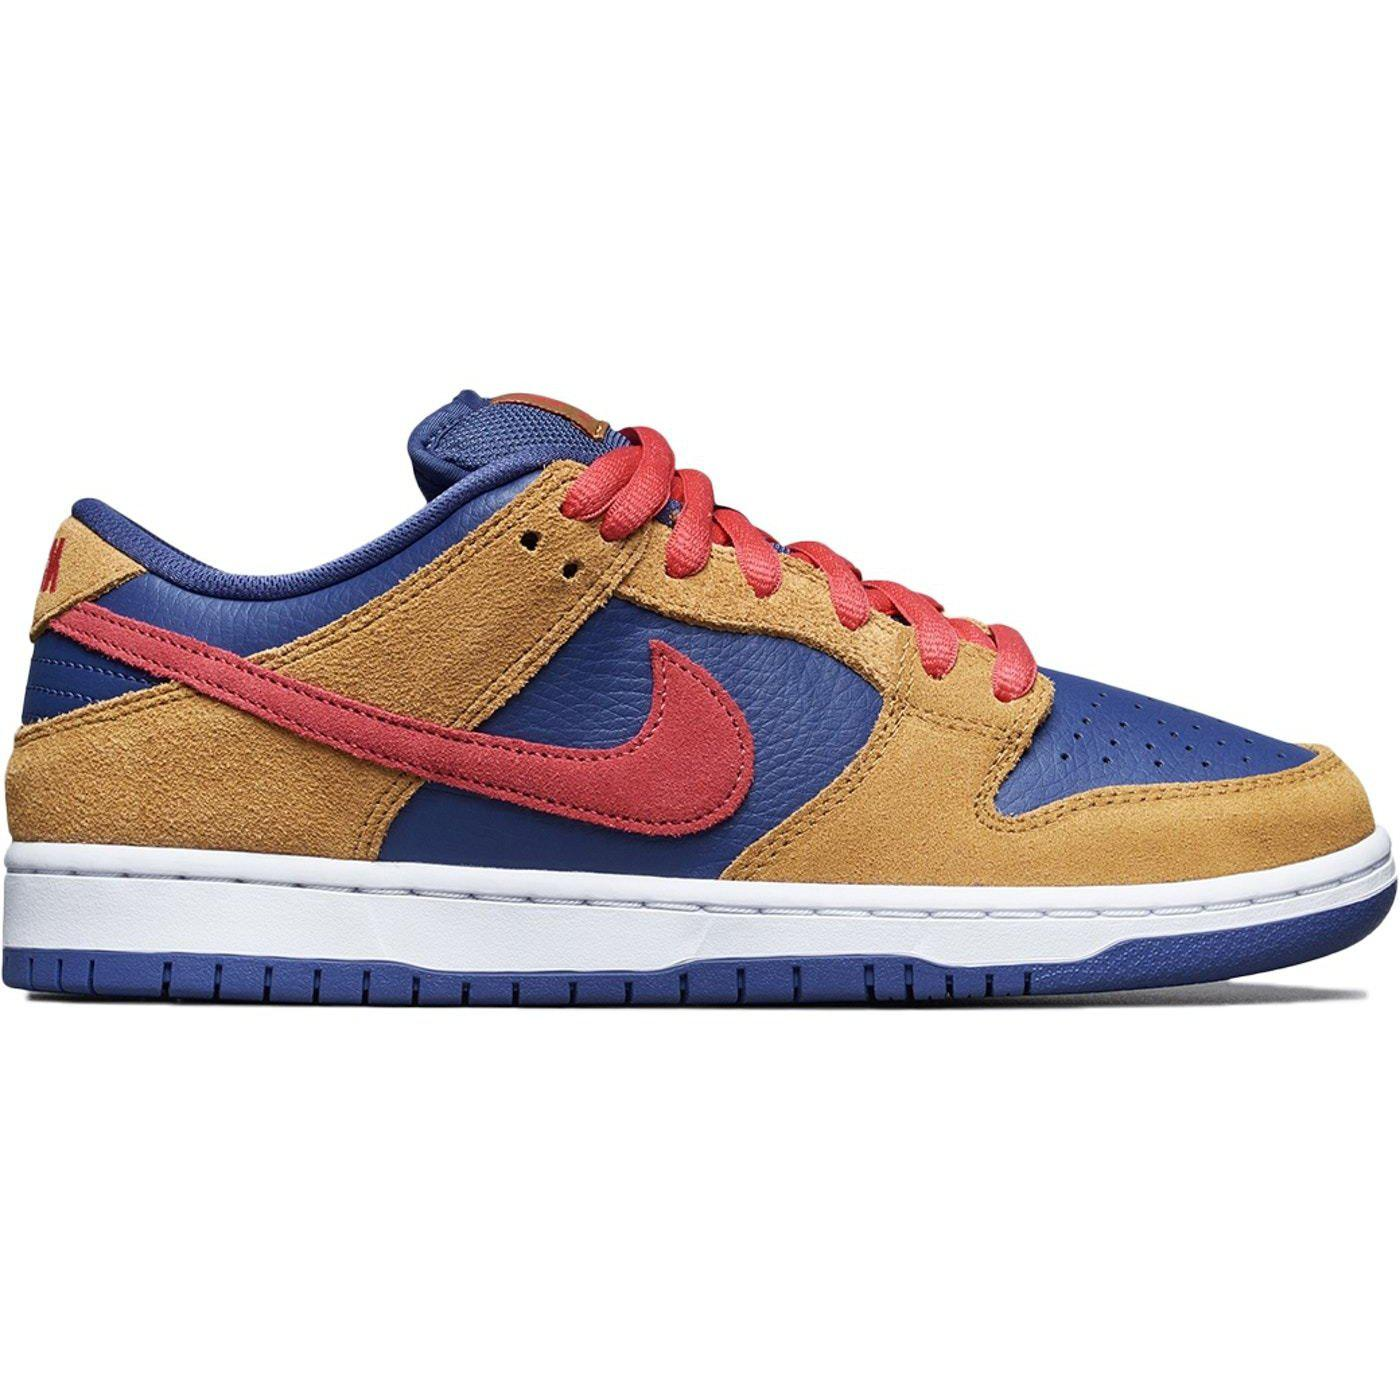 Dunk Low SB 'Papa Bear' | Waves Never Die | Nike | Sneakers